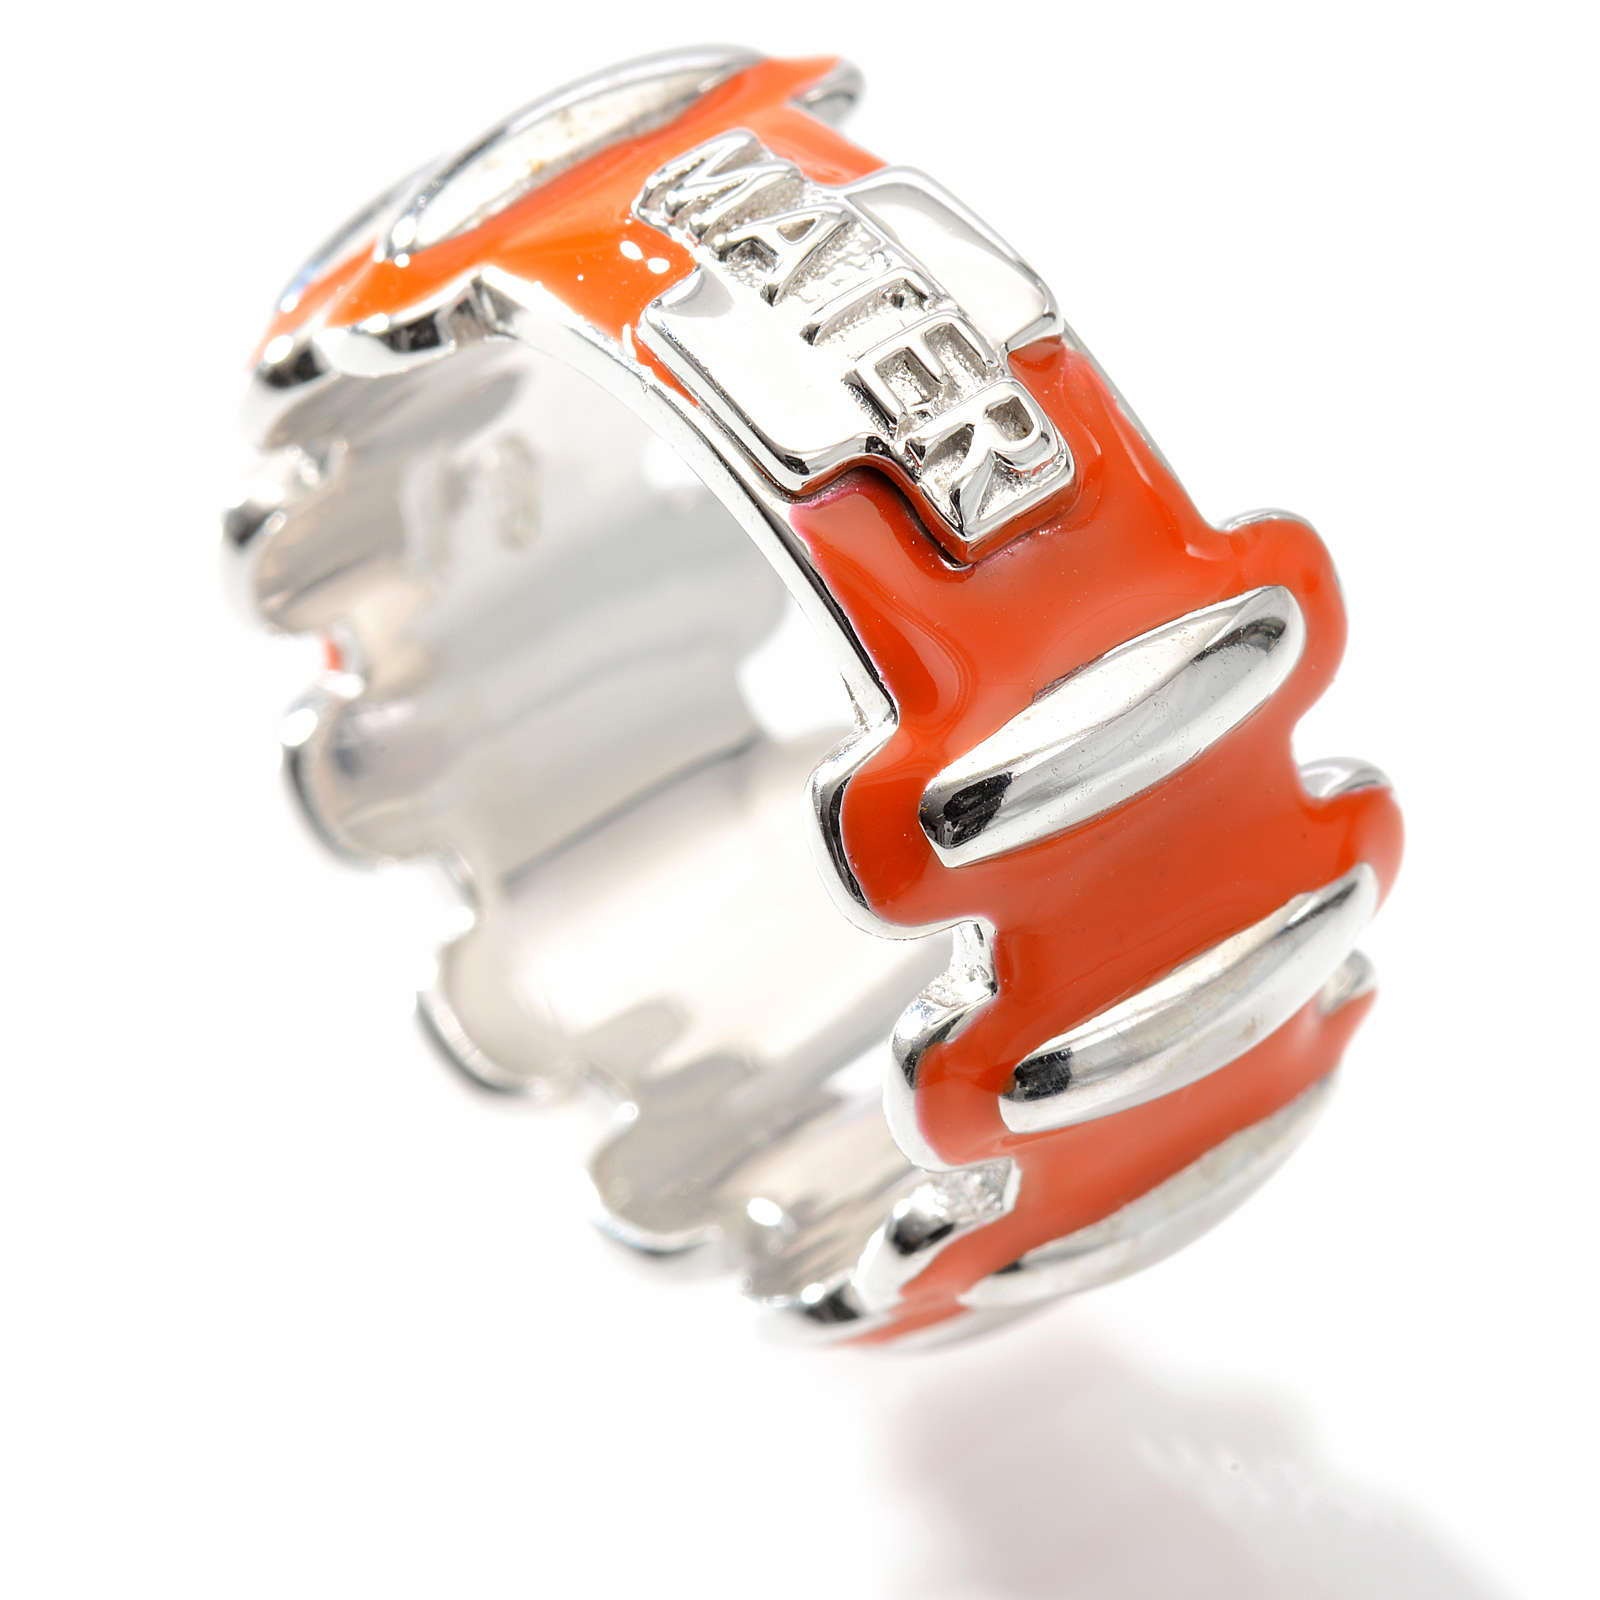 Rosary ring in silver 925 with orange enamel, MATER 3